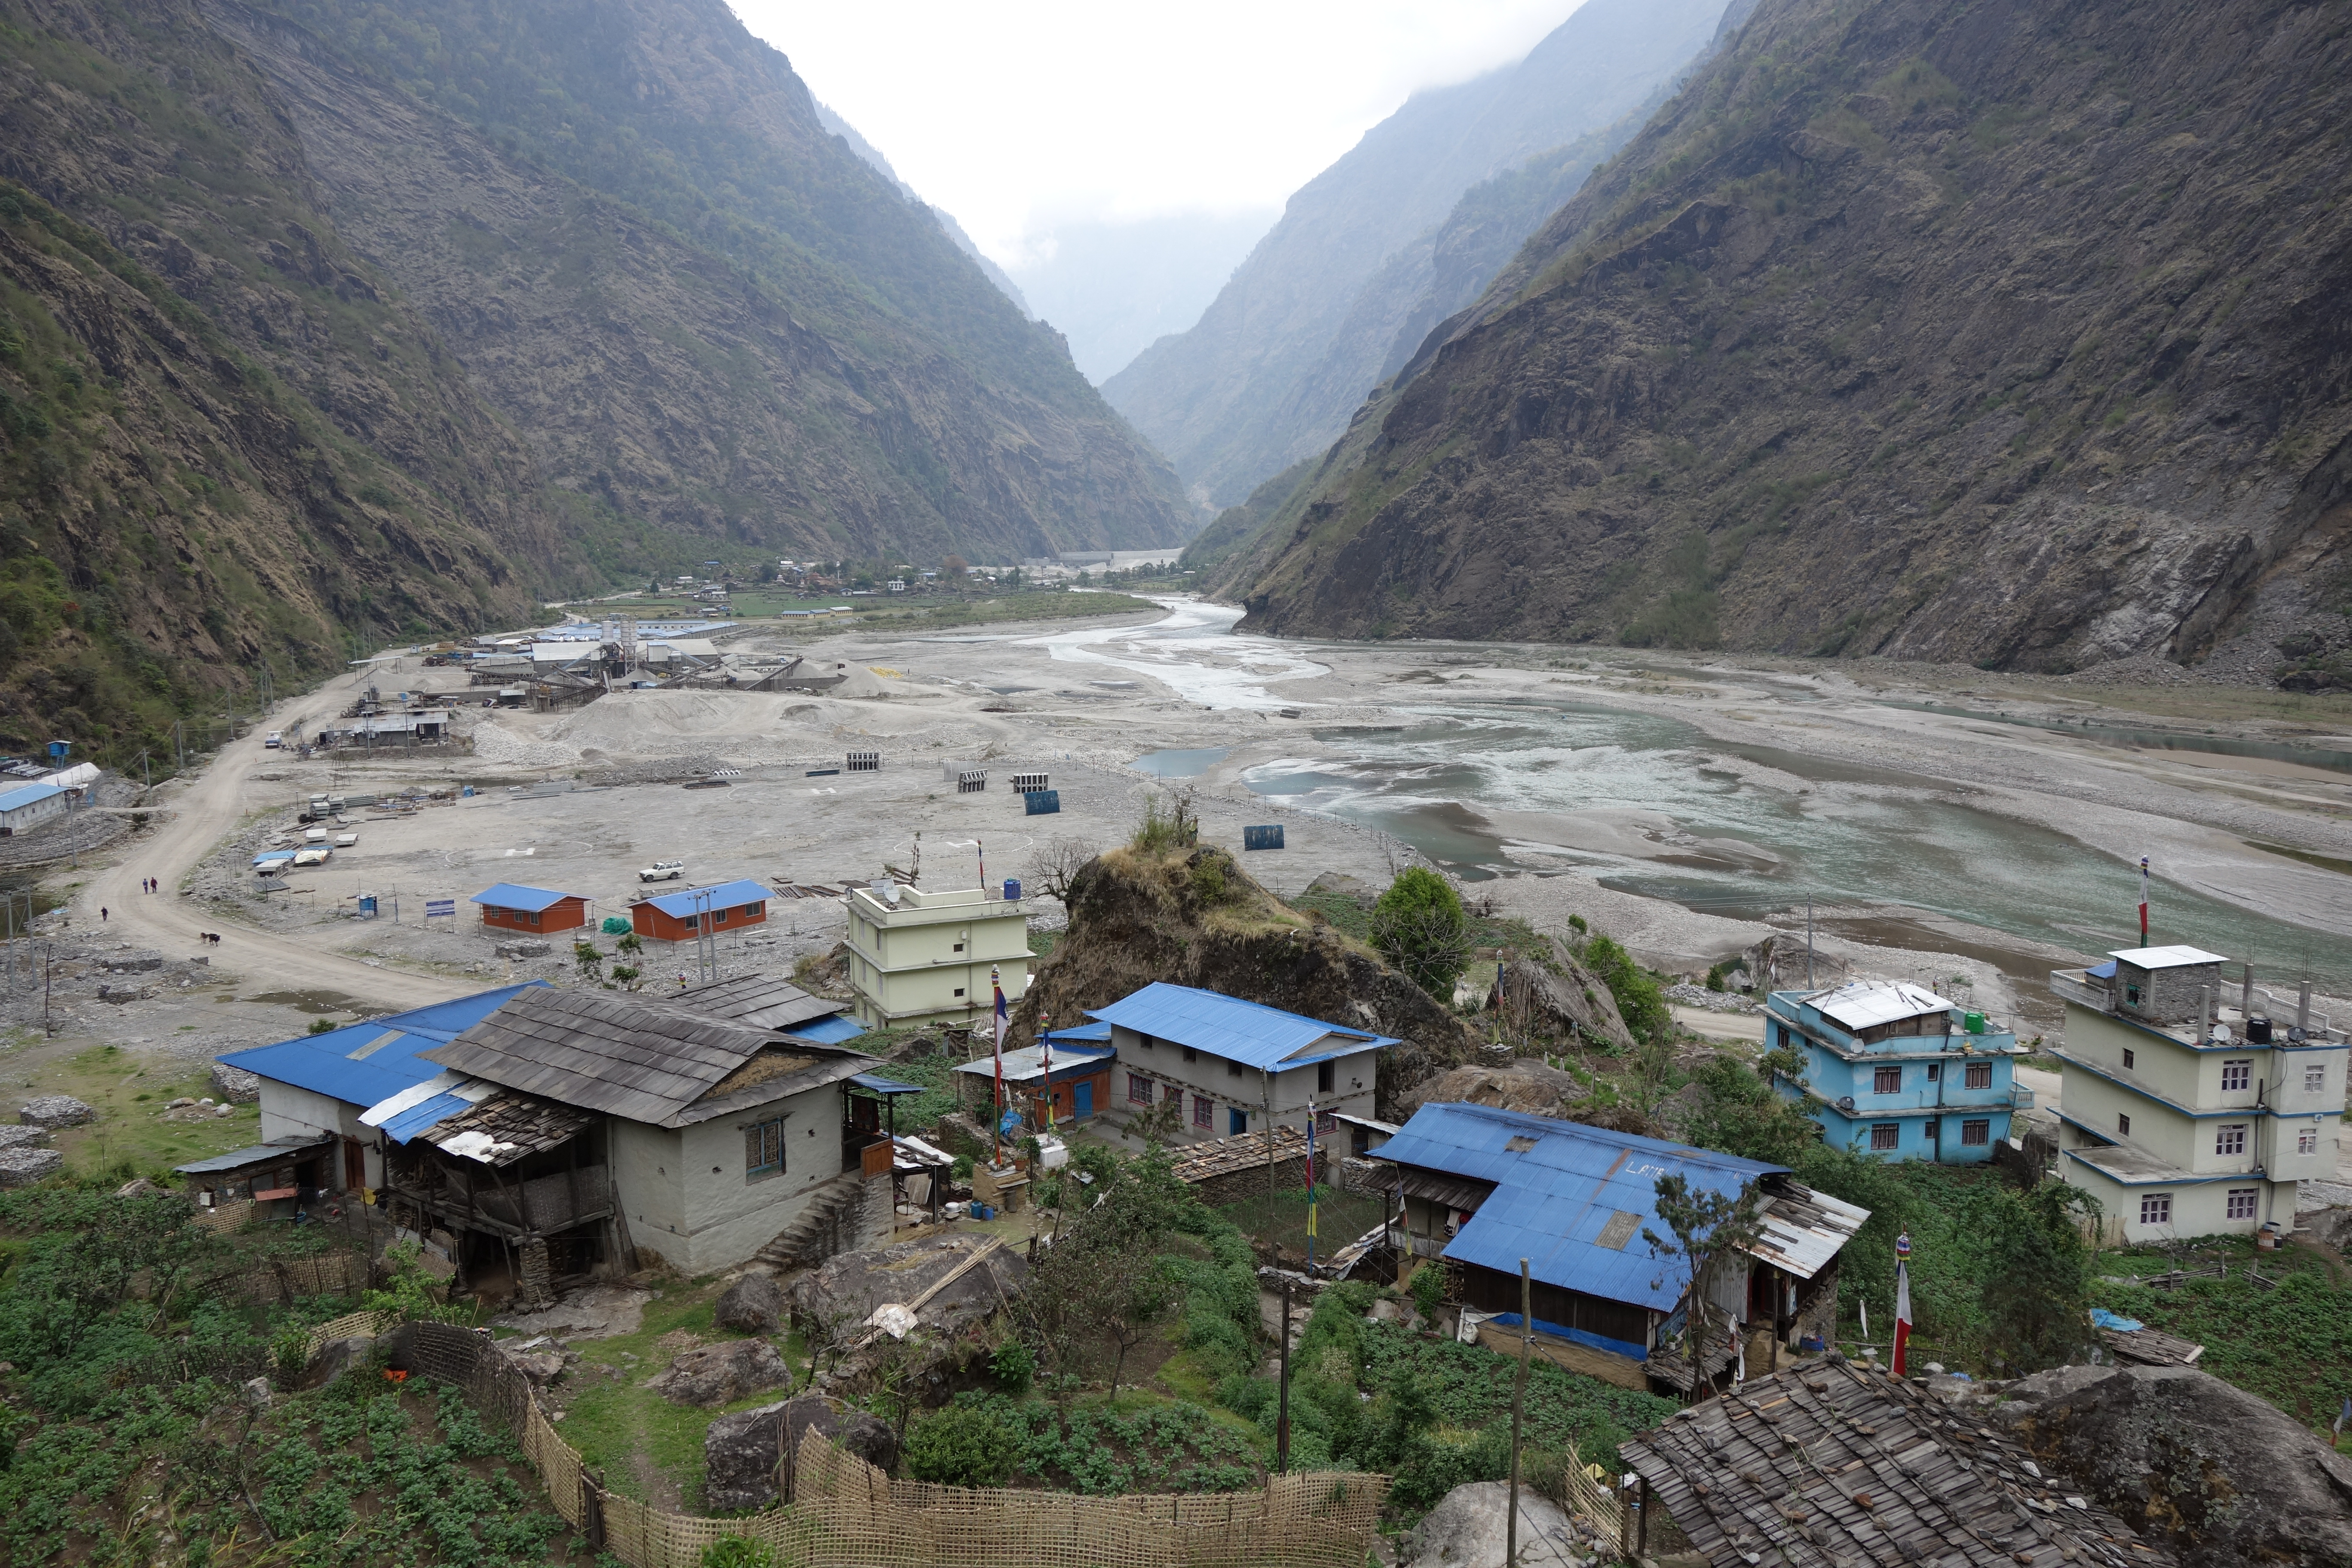 Lamabagar (2000m a.s.l.) lies on the flat riverbed of the Upper Tamakoshi River, which developed as a consequence of a massive landslide (probably earthquake-induced) in the past (by Dr. Viktor Bruckman).